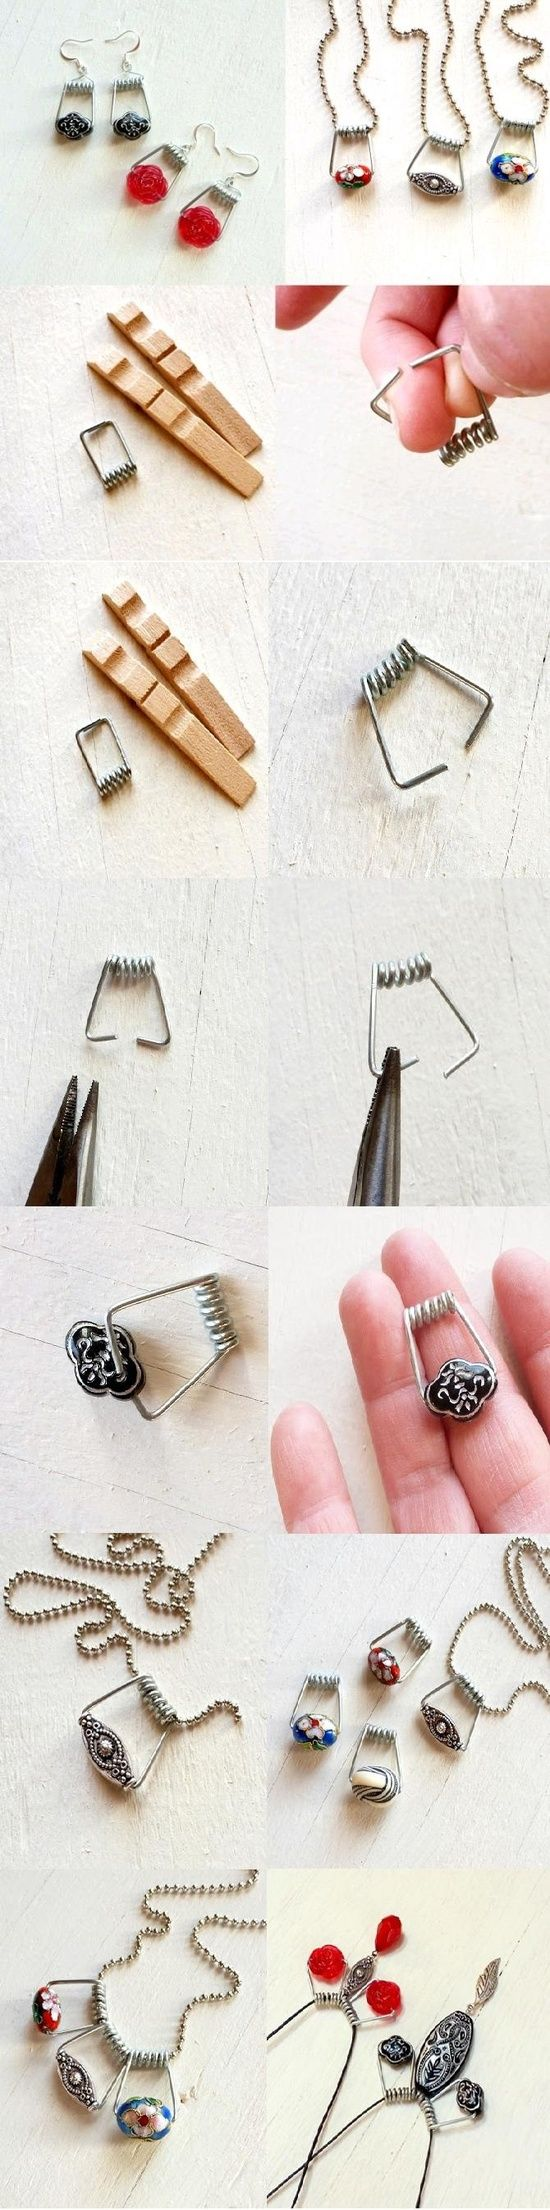 Recycled Pegs :)